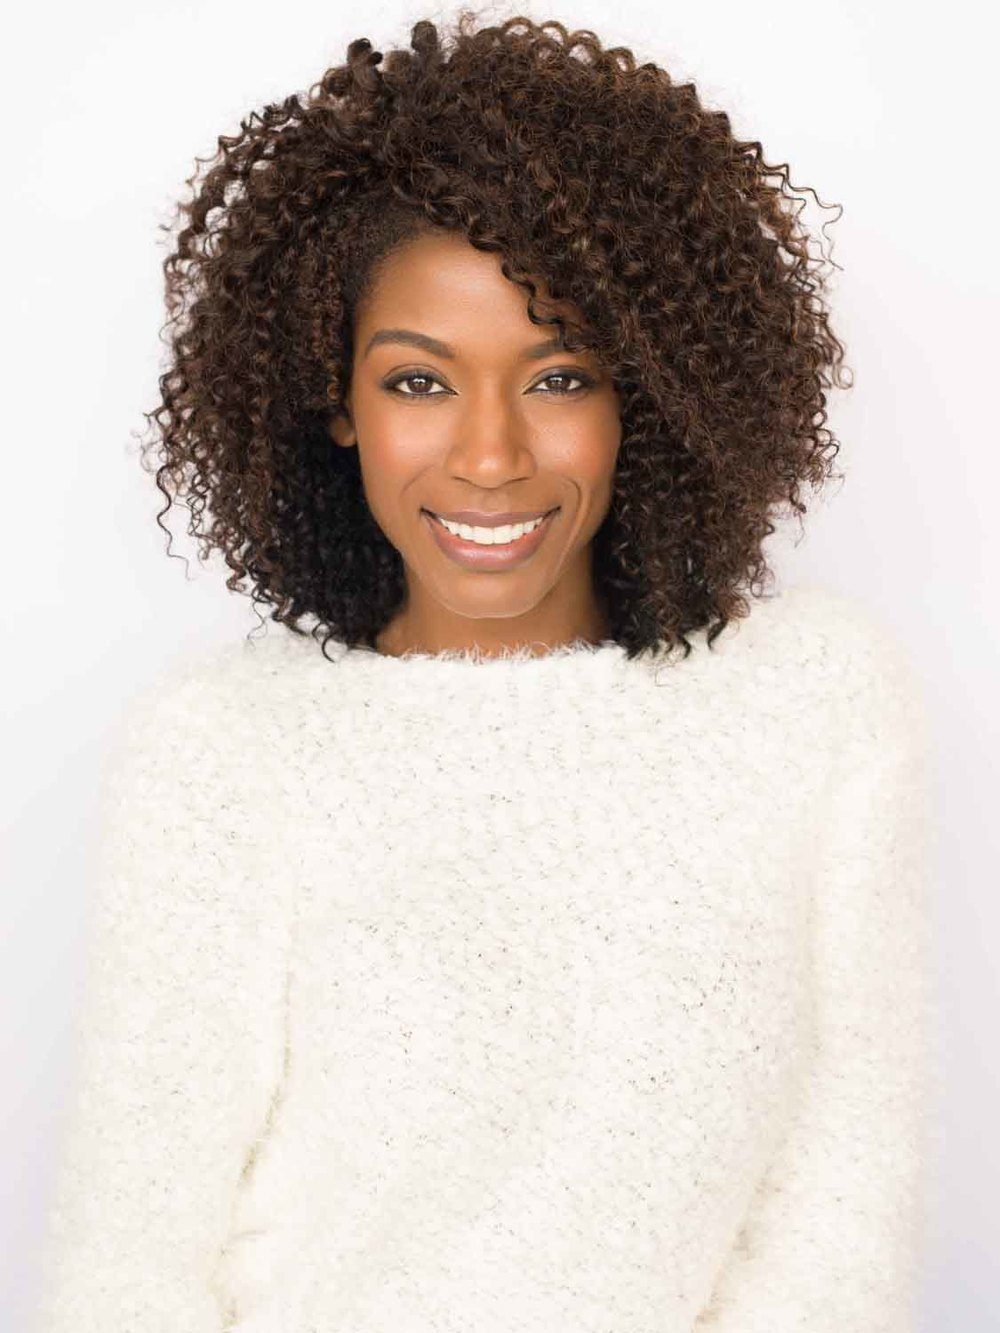 White Sweater Headshot Large.jpg